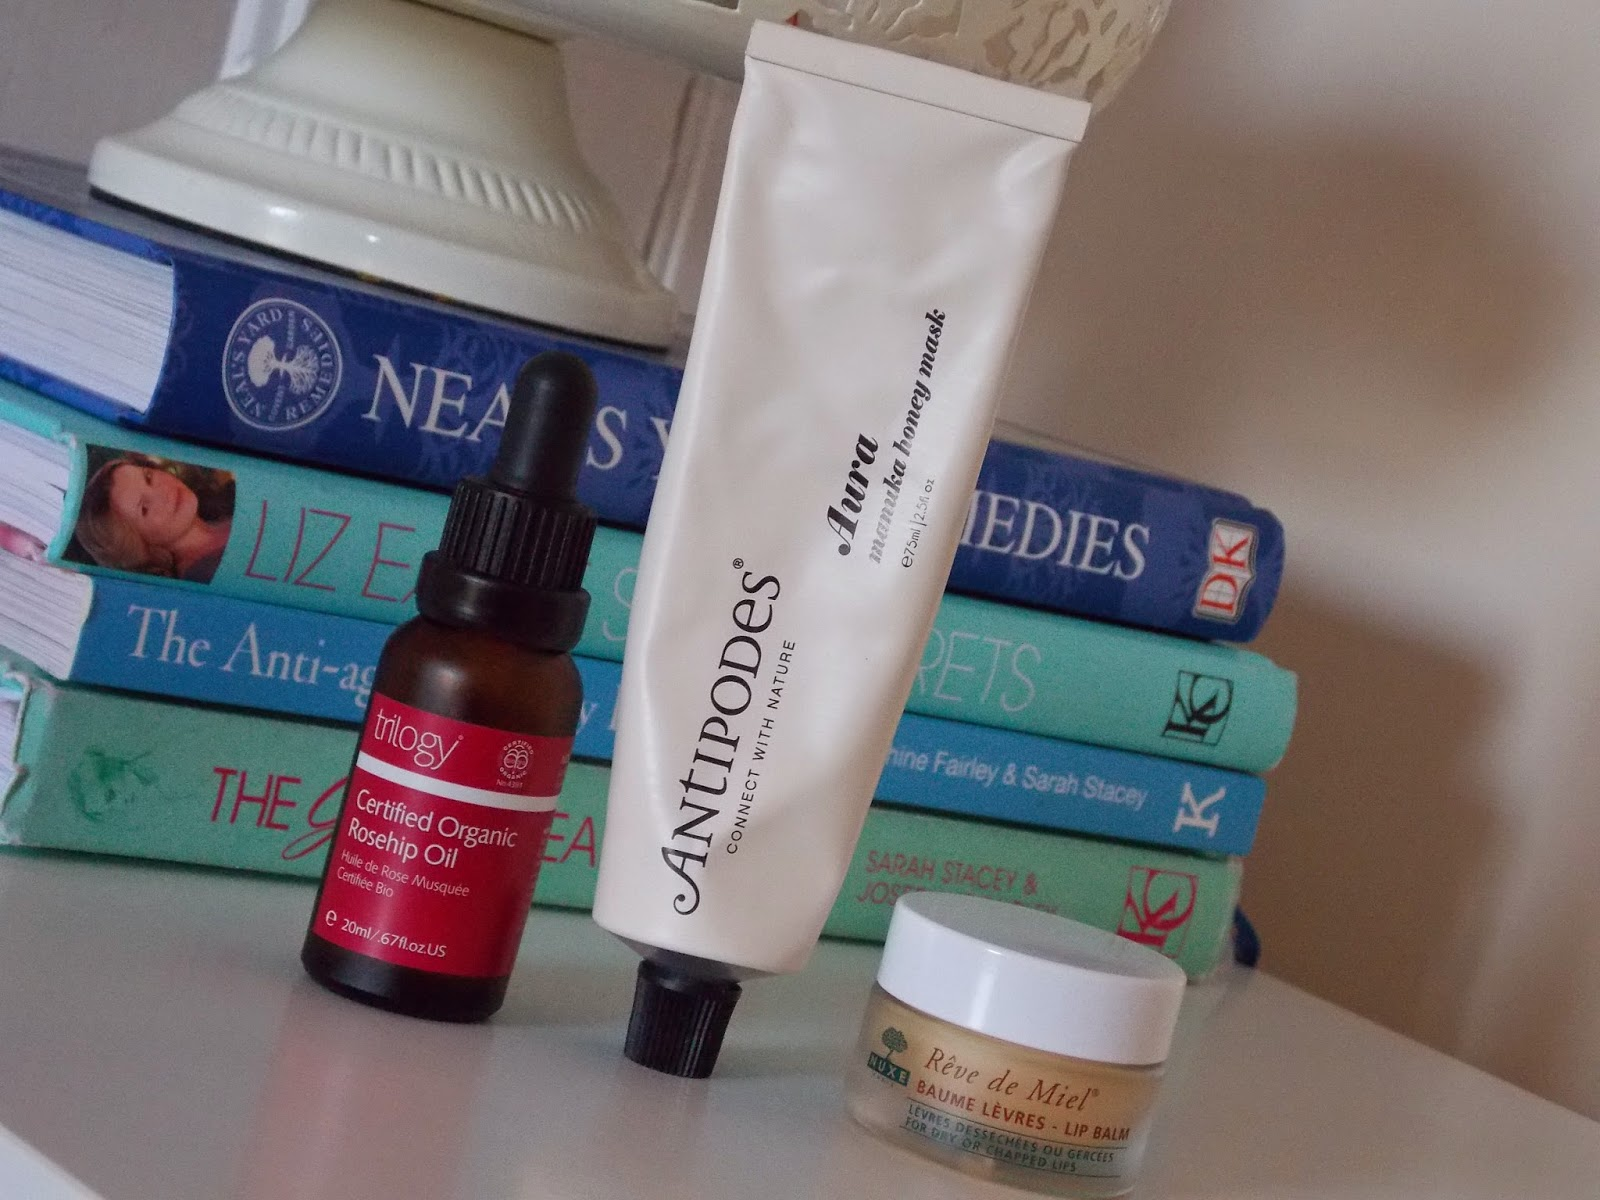 Trilogy Certified Organic Rosehip Oil, Antipodes Aura Manuka Honey Mask and Nuxe Reve de Miel Lip Balm